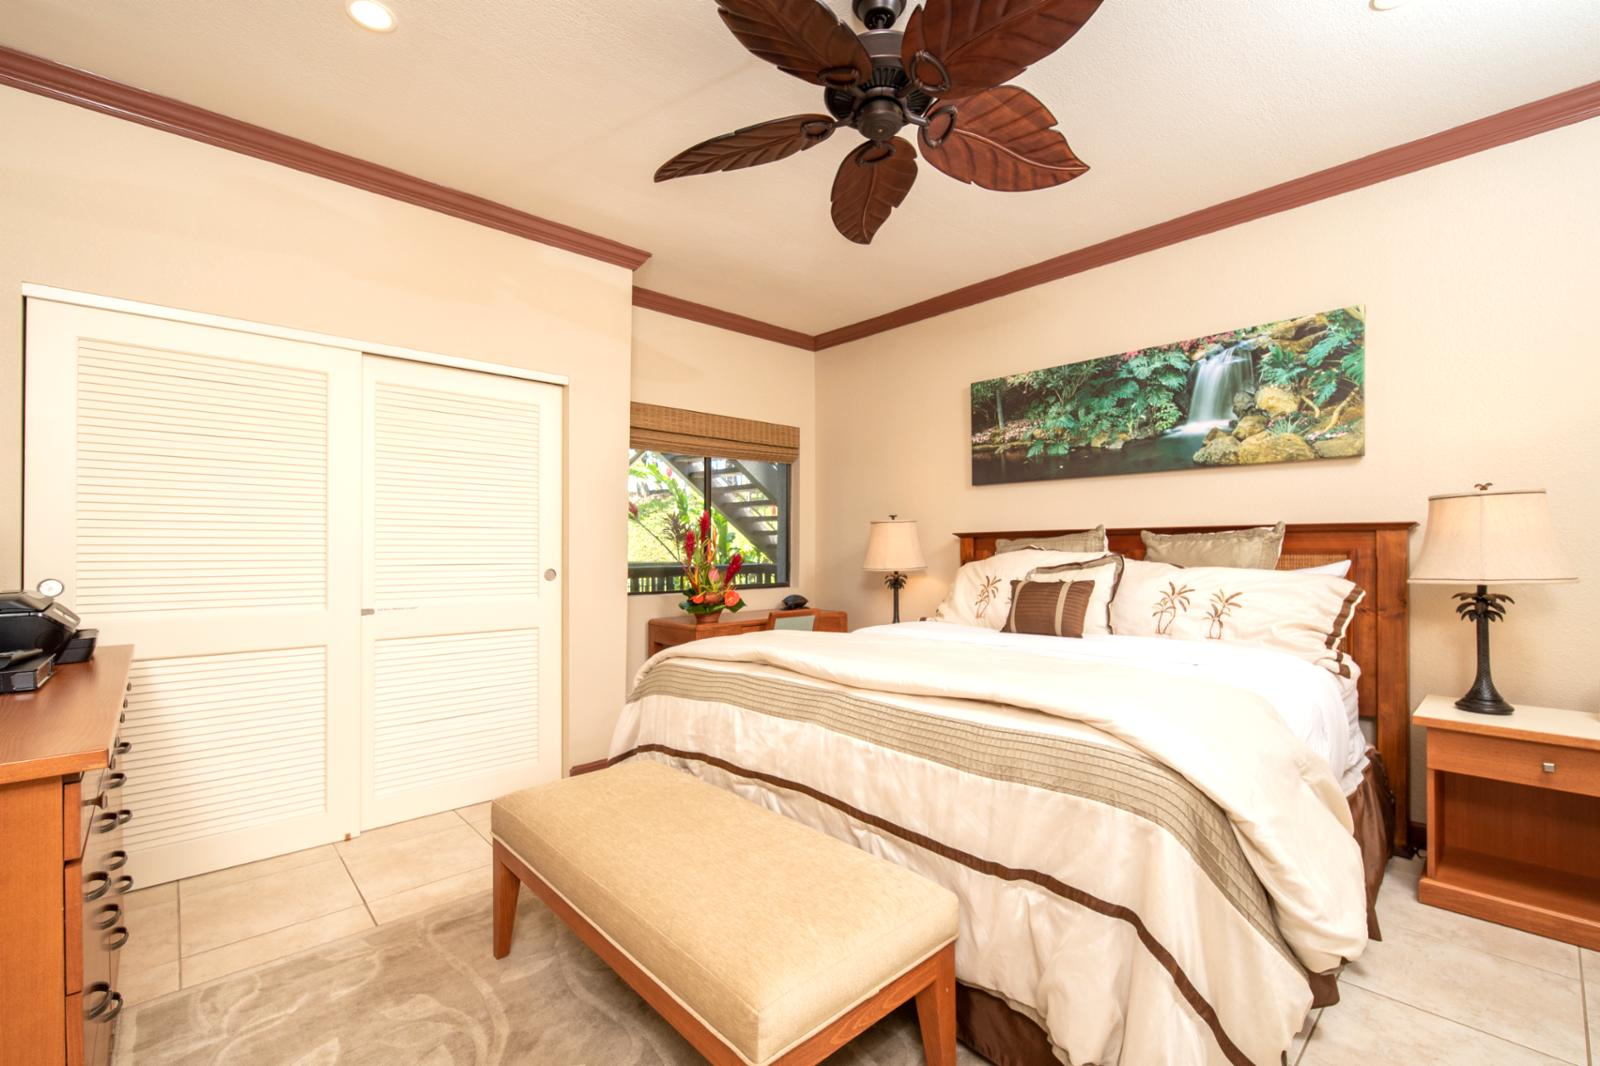 Oversized ceiling fan and comfortable King size bed!